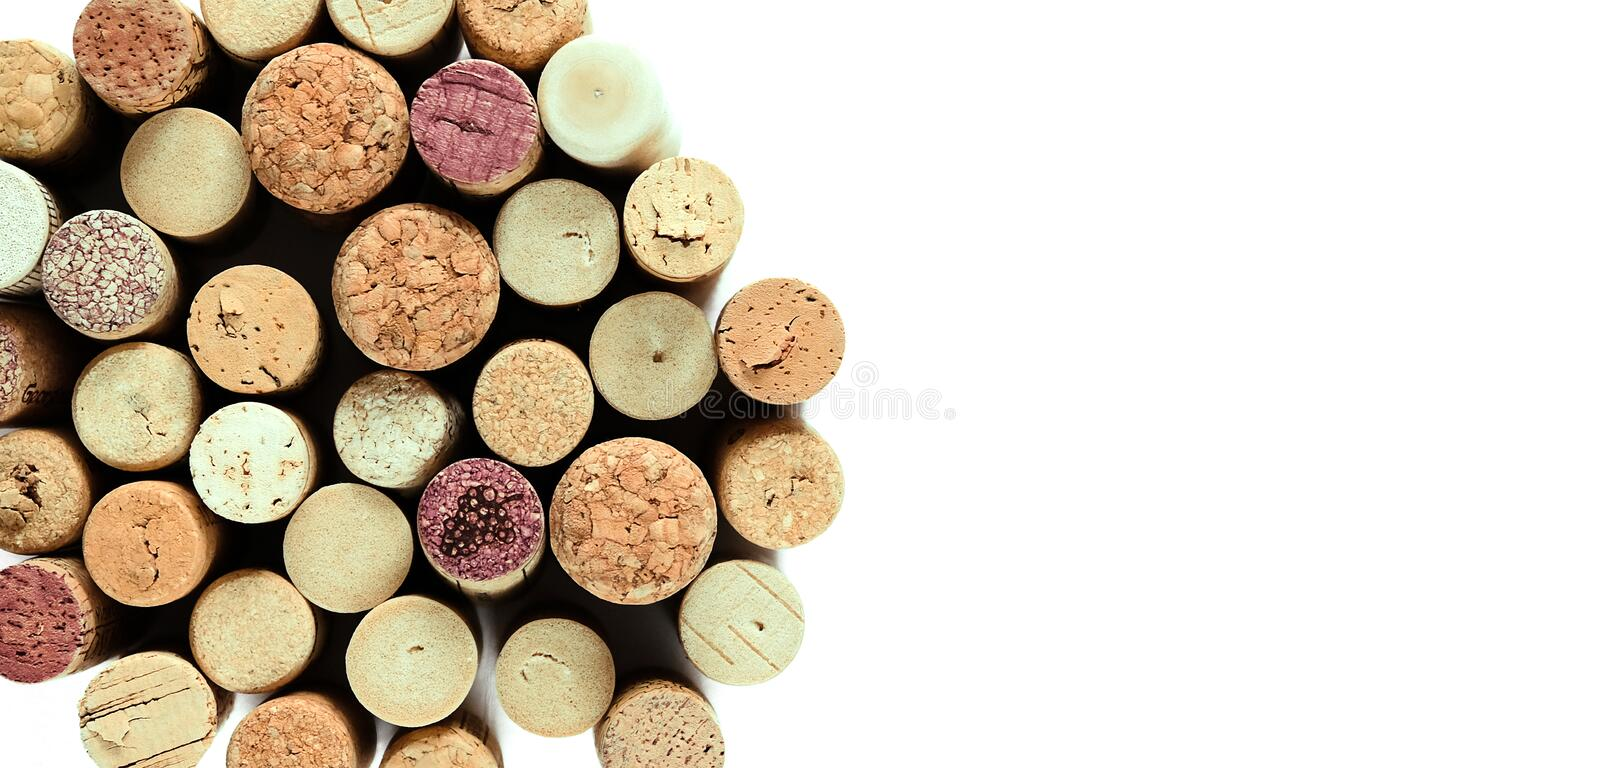 Wine corks background isolated on white with the place for text. Wine corks isolated on white background with the text area stock images